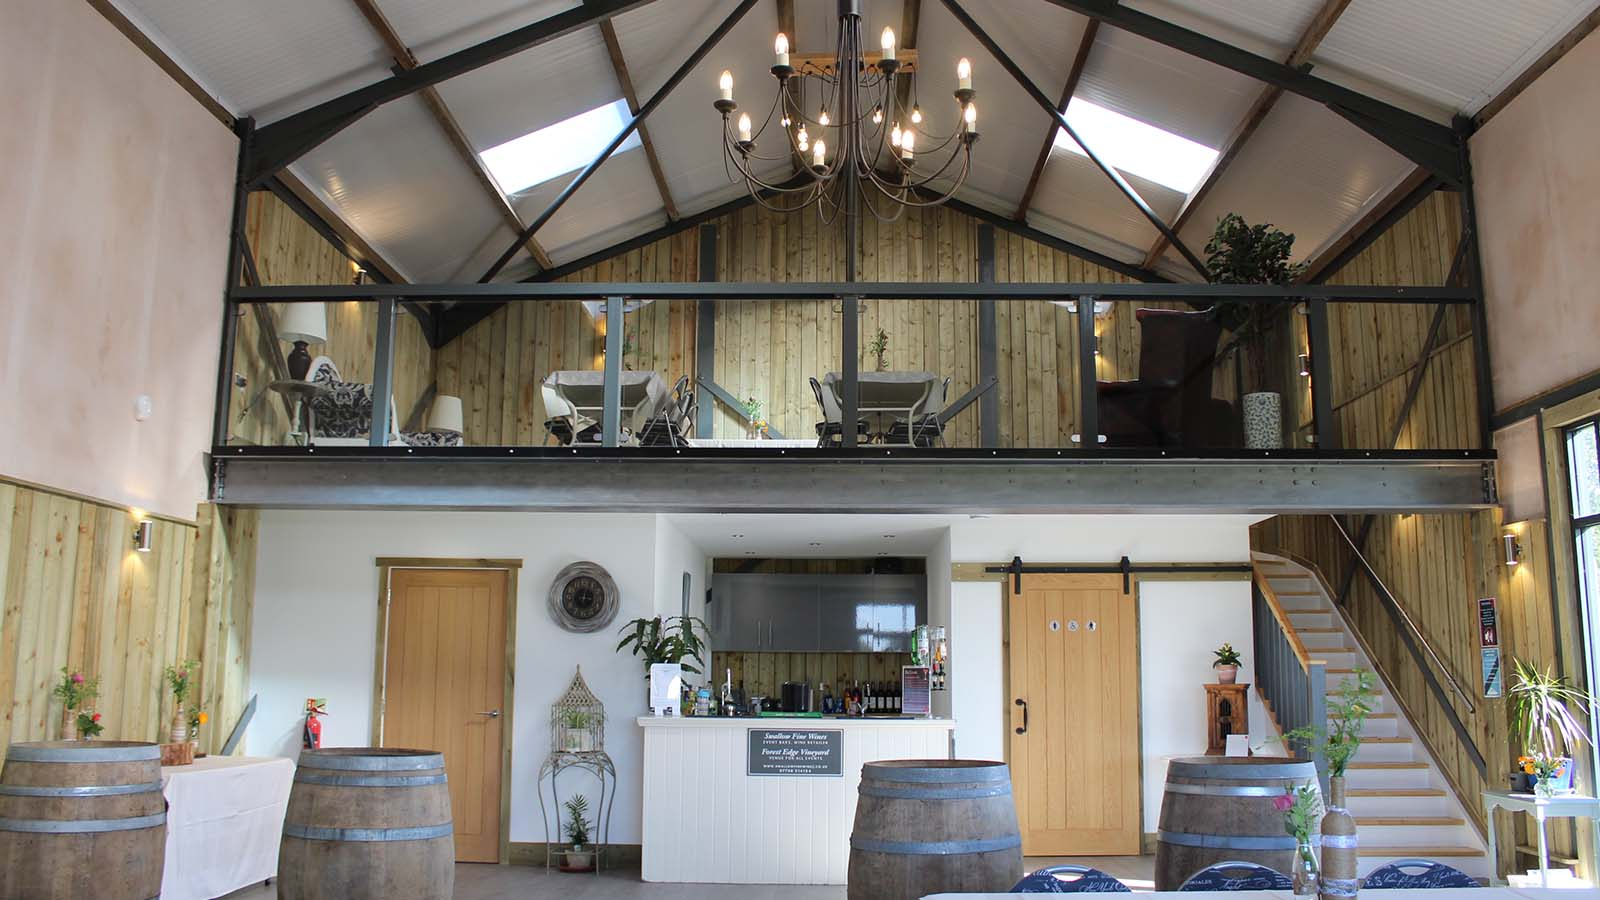 weddings, corporate and special events at Forest Edge Vineyard